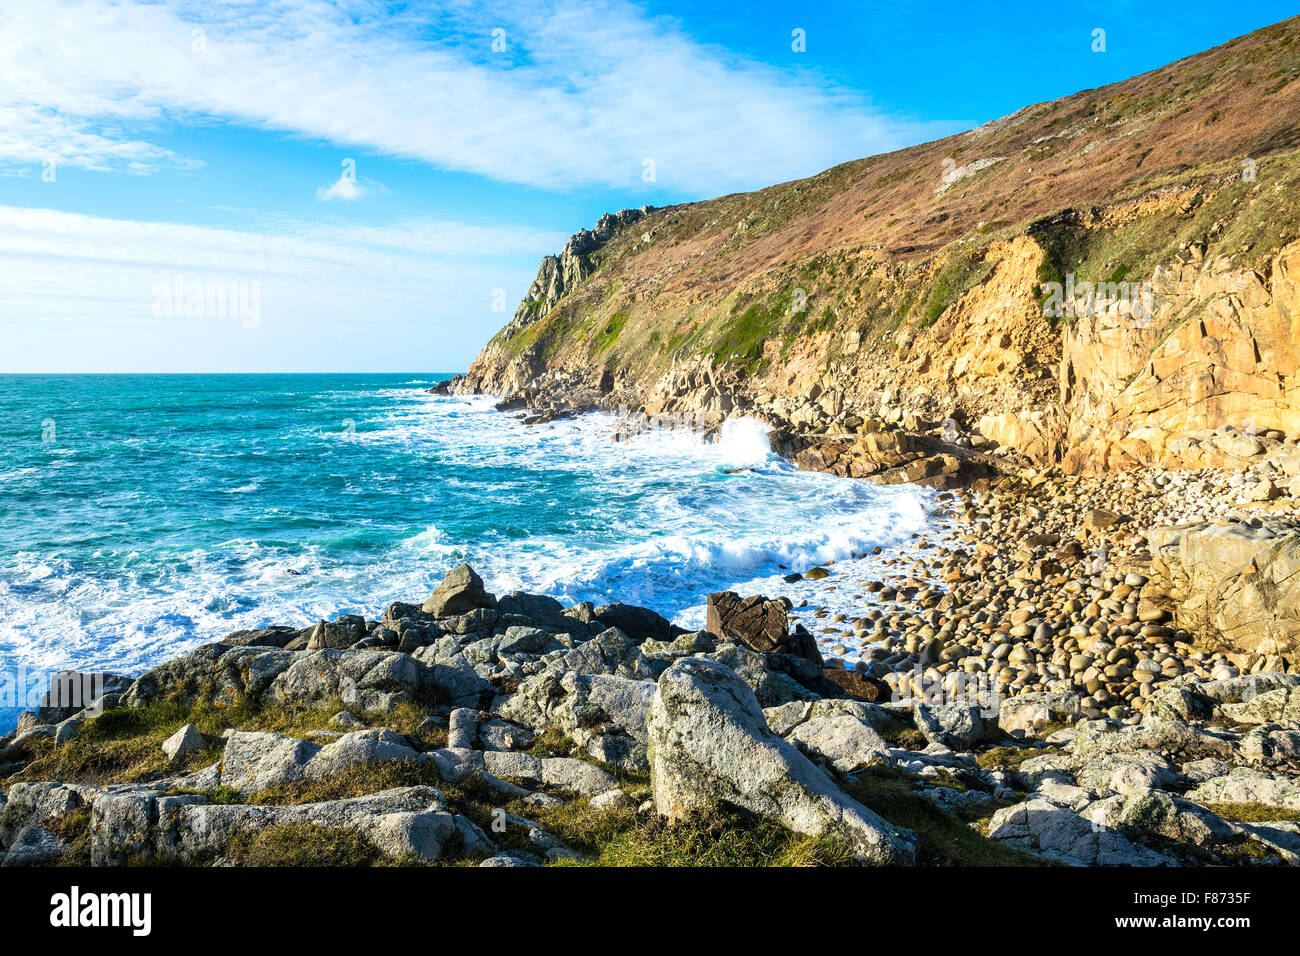 Cot Cove at Porth Nanven near St.Just in Cornwall, England, UK - Stock Image